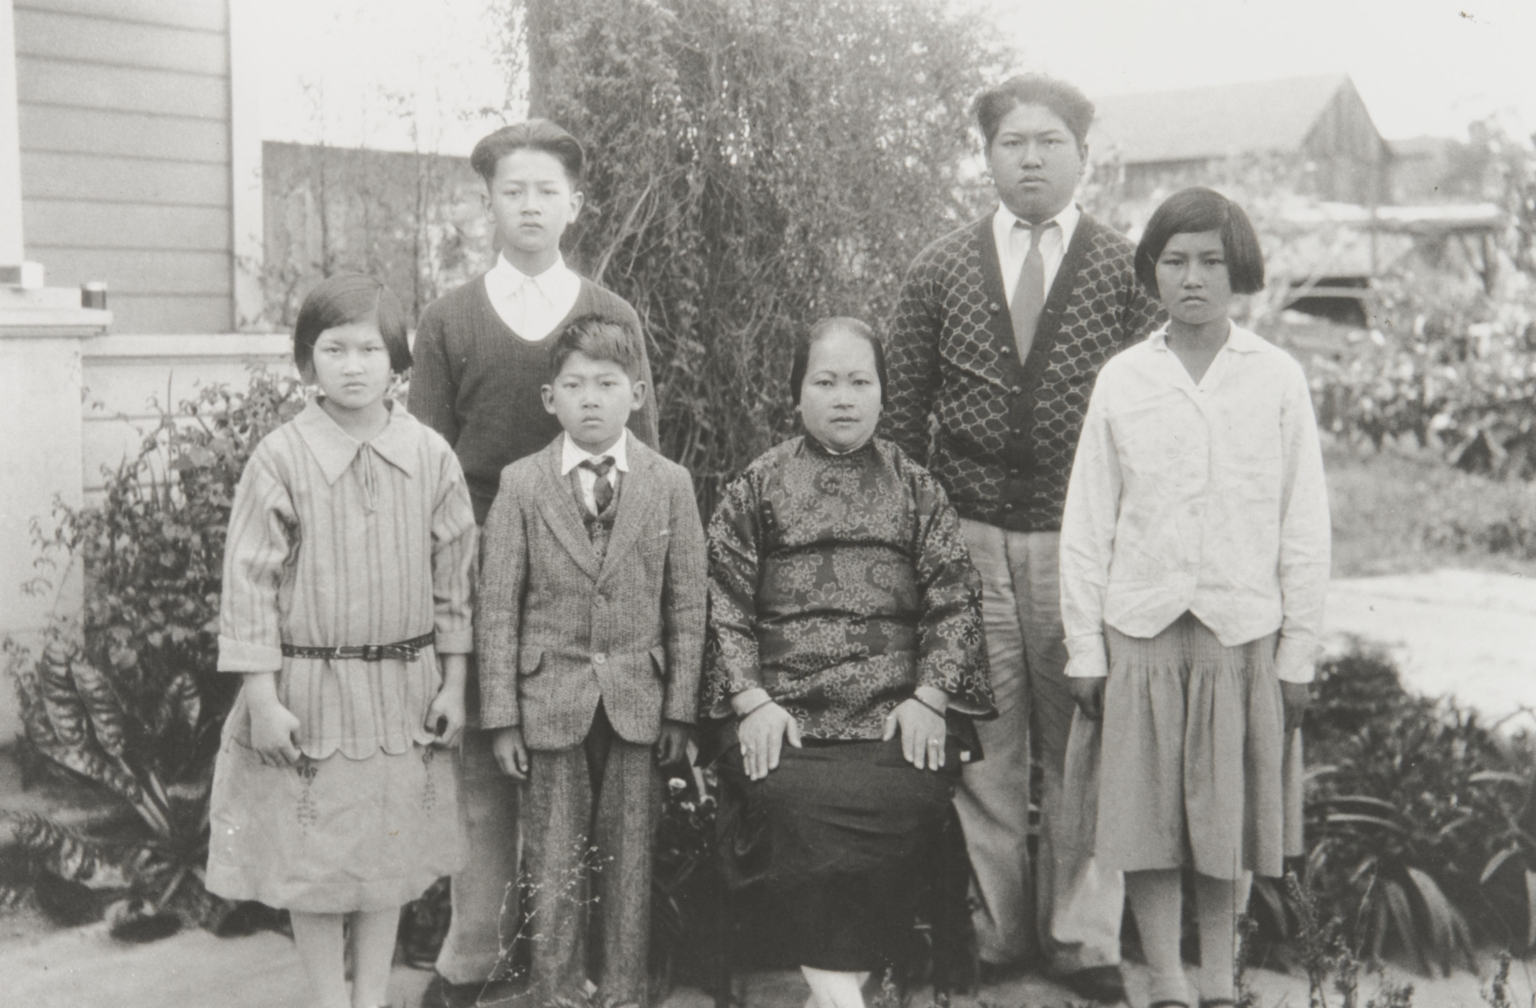 Wong Family. Guadalupe : 1930. Top L-R: You Ung (Bud), Sam. Bottom: Mildred, George, Mother Hoberbinn. Visiting married sister in Santa Barbara.